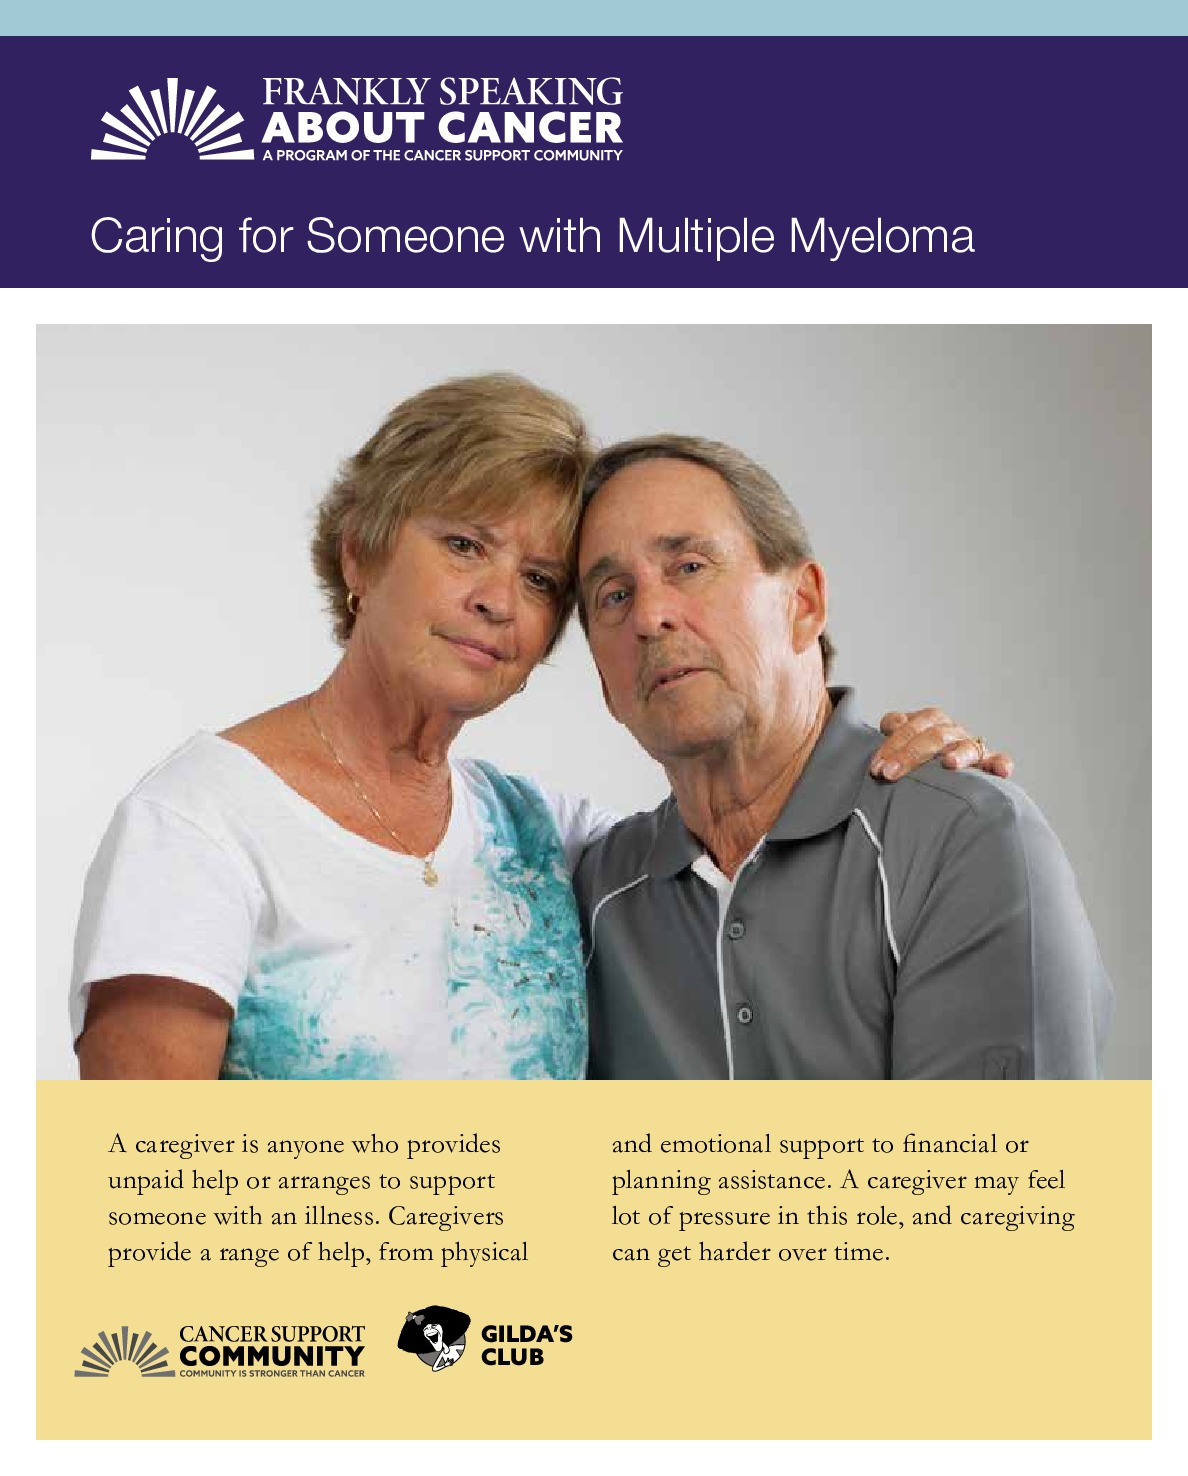 Caring for Someone with Multiple Myeloma